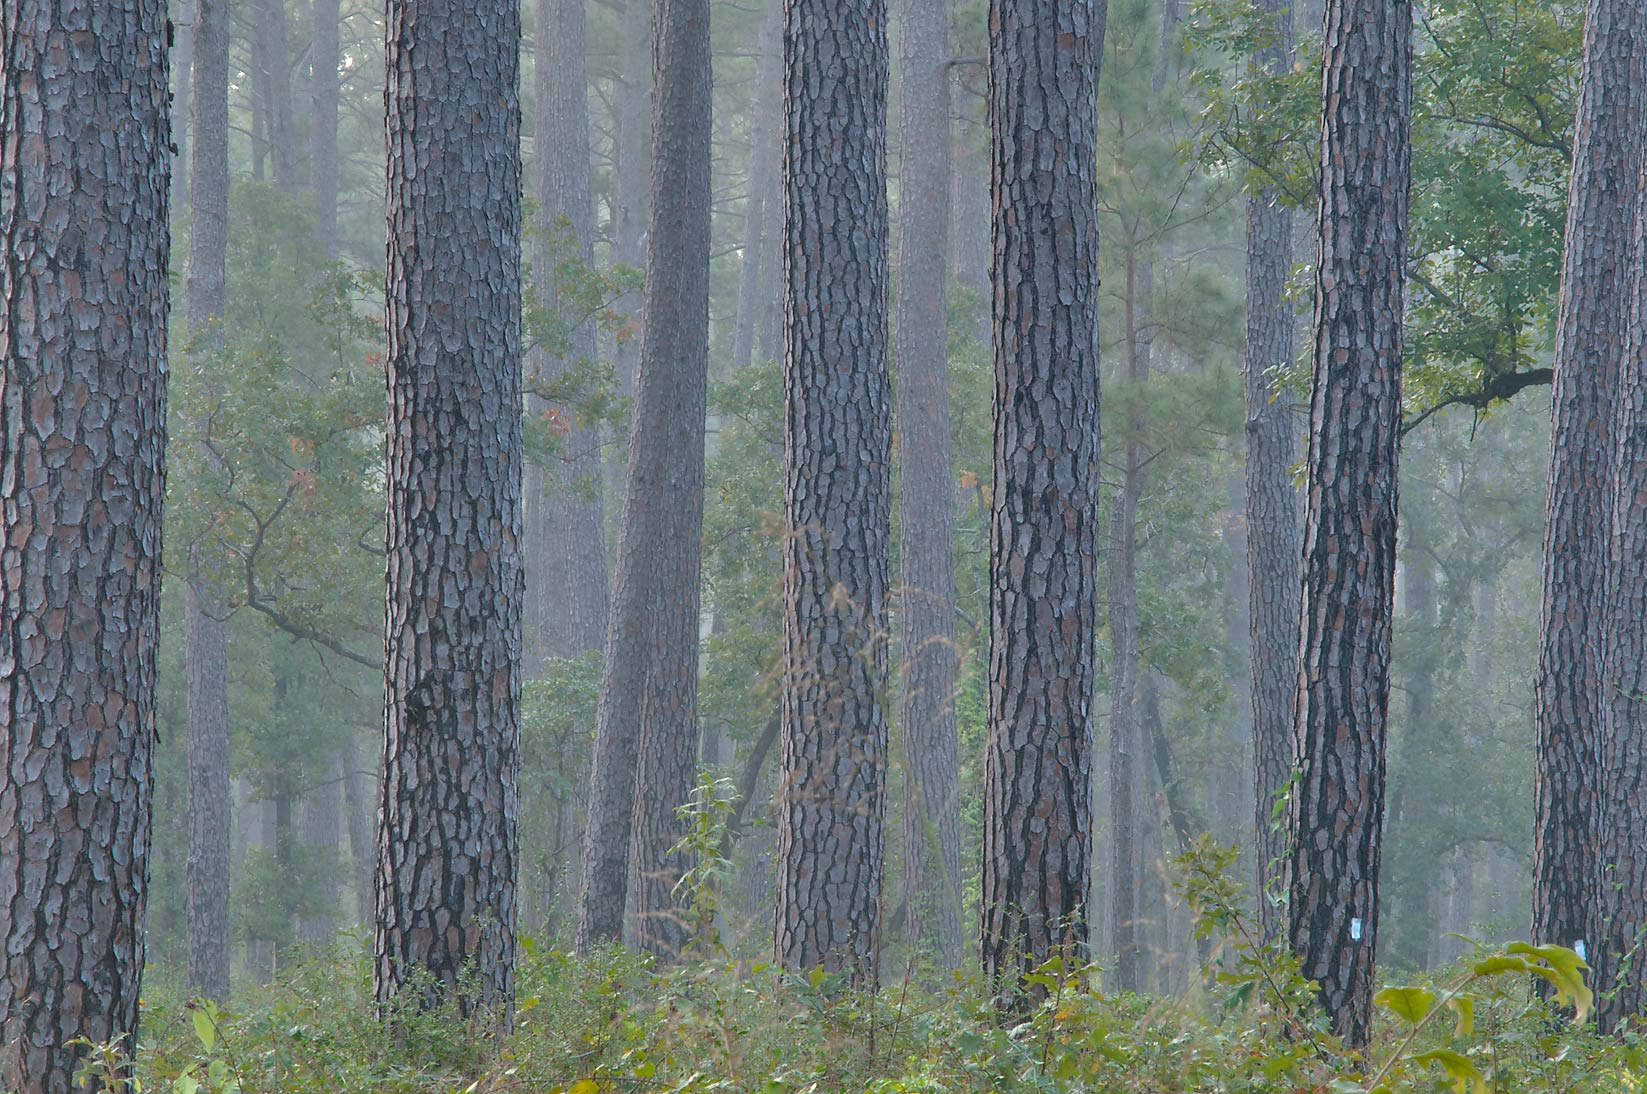 Pine trees near Little Lake Creek Loop Trail in...National Forest. Richards, Texas